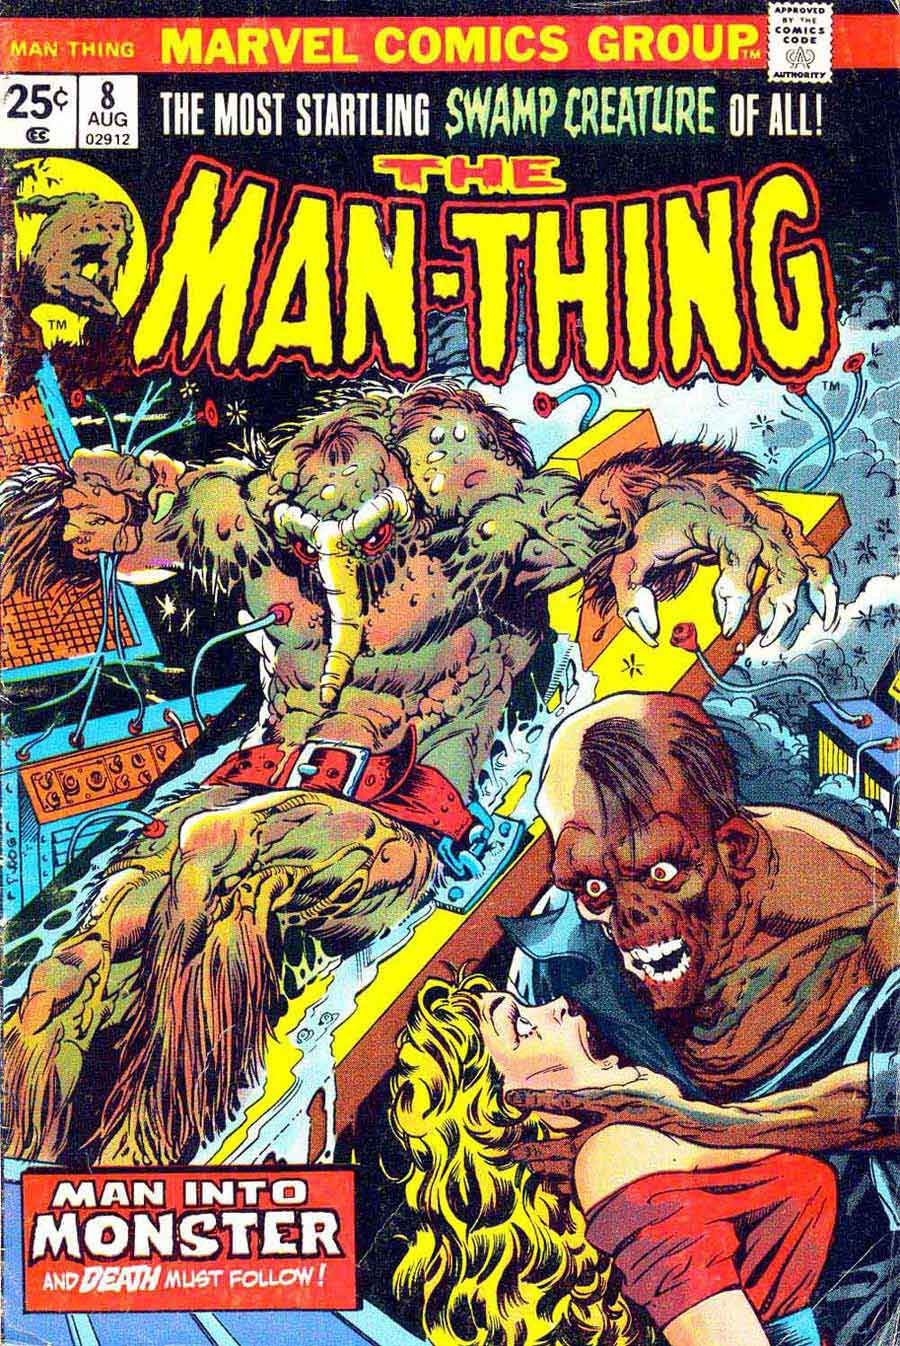 Man-Thing v1 #8 marvel 1970s bronze age comic book cover art by Mike Ploog